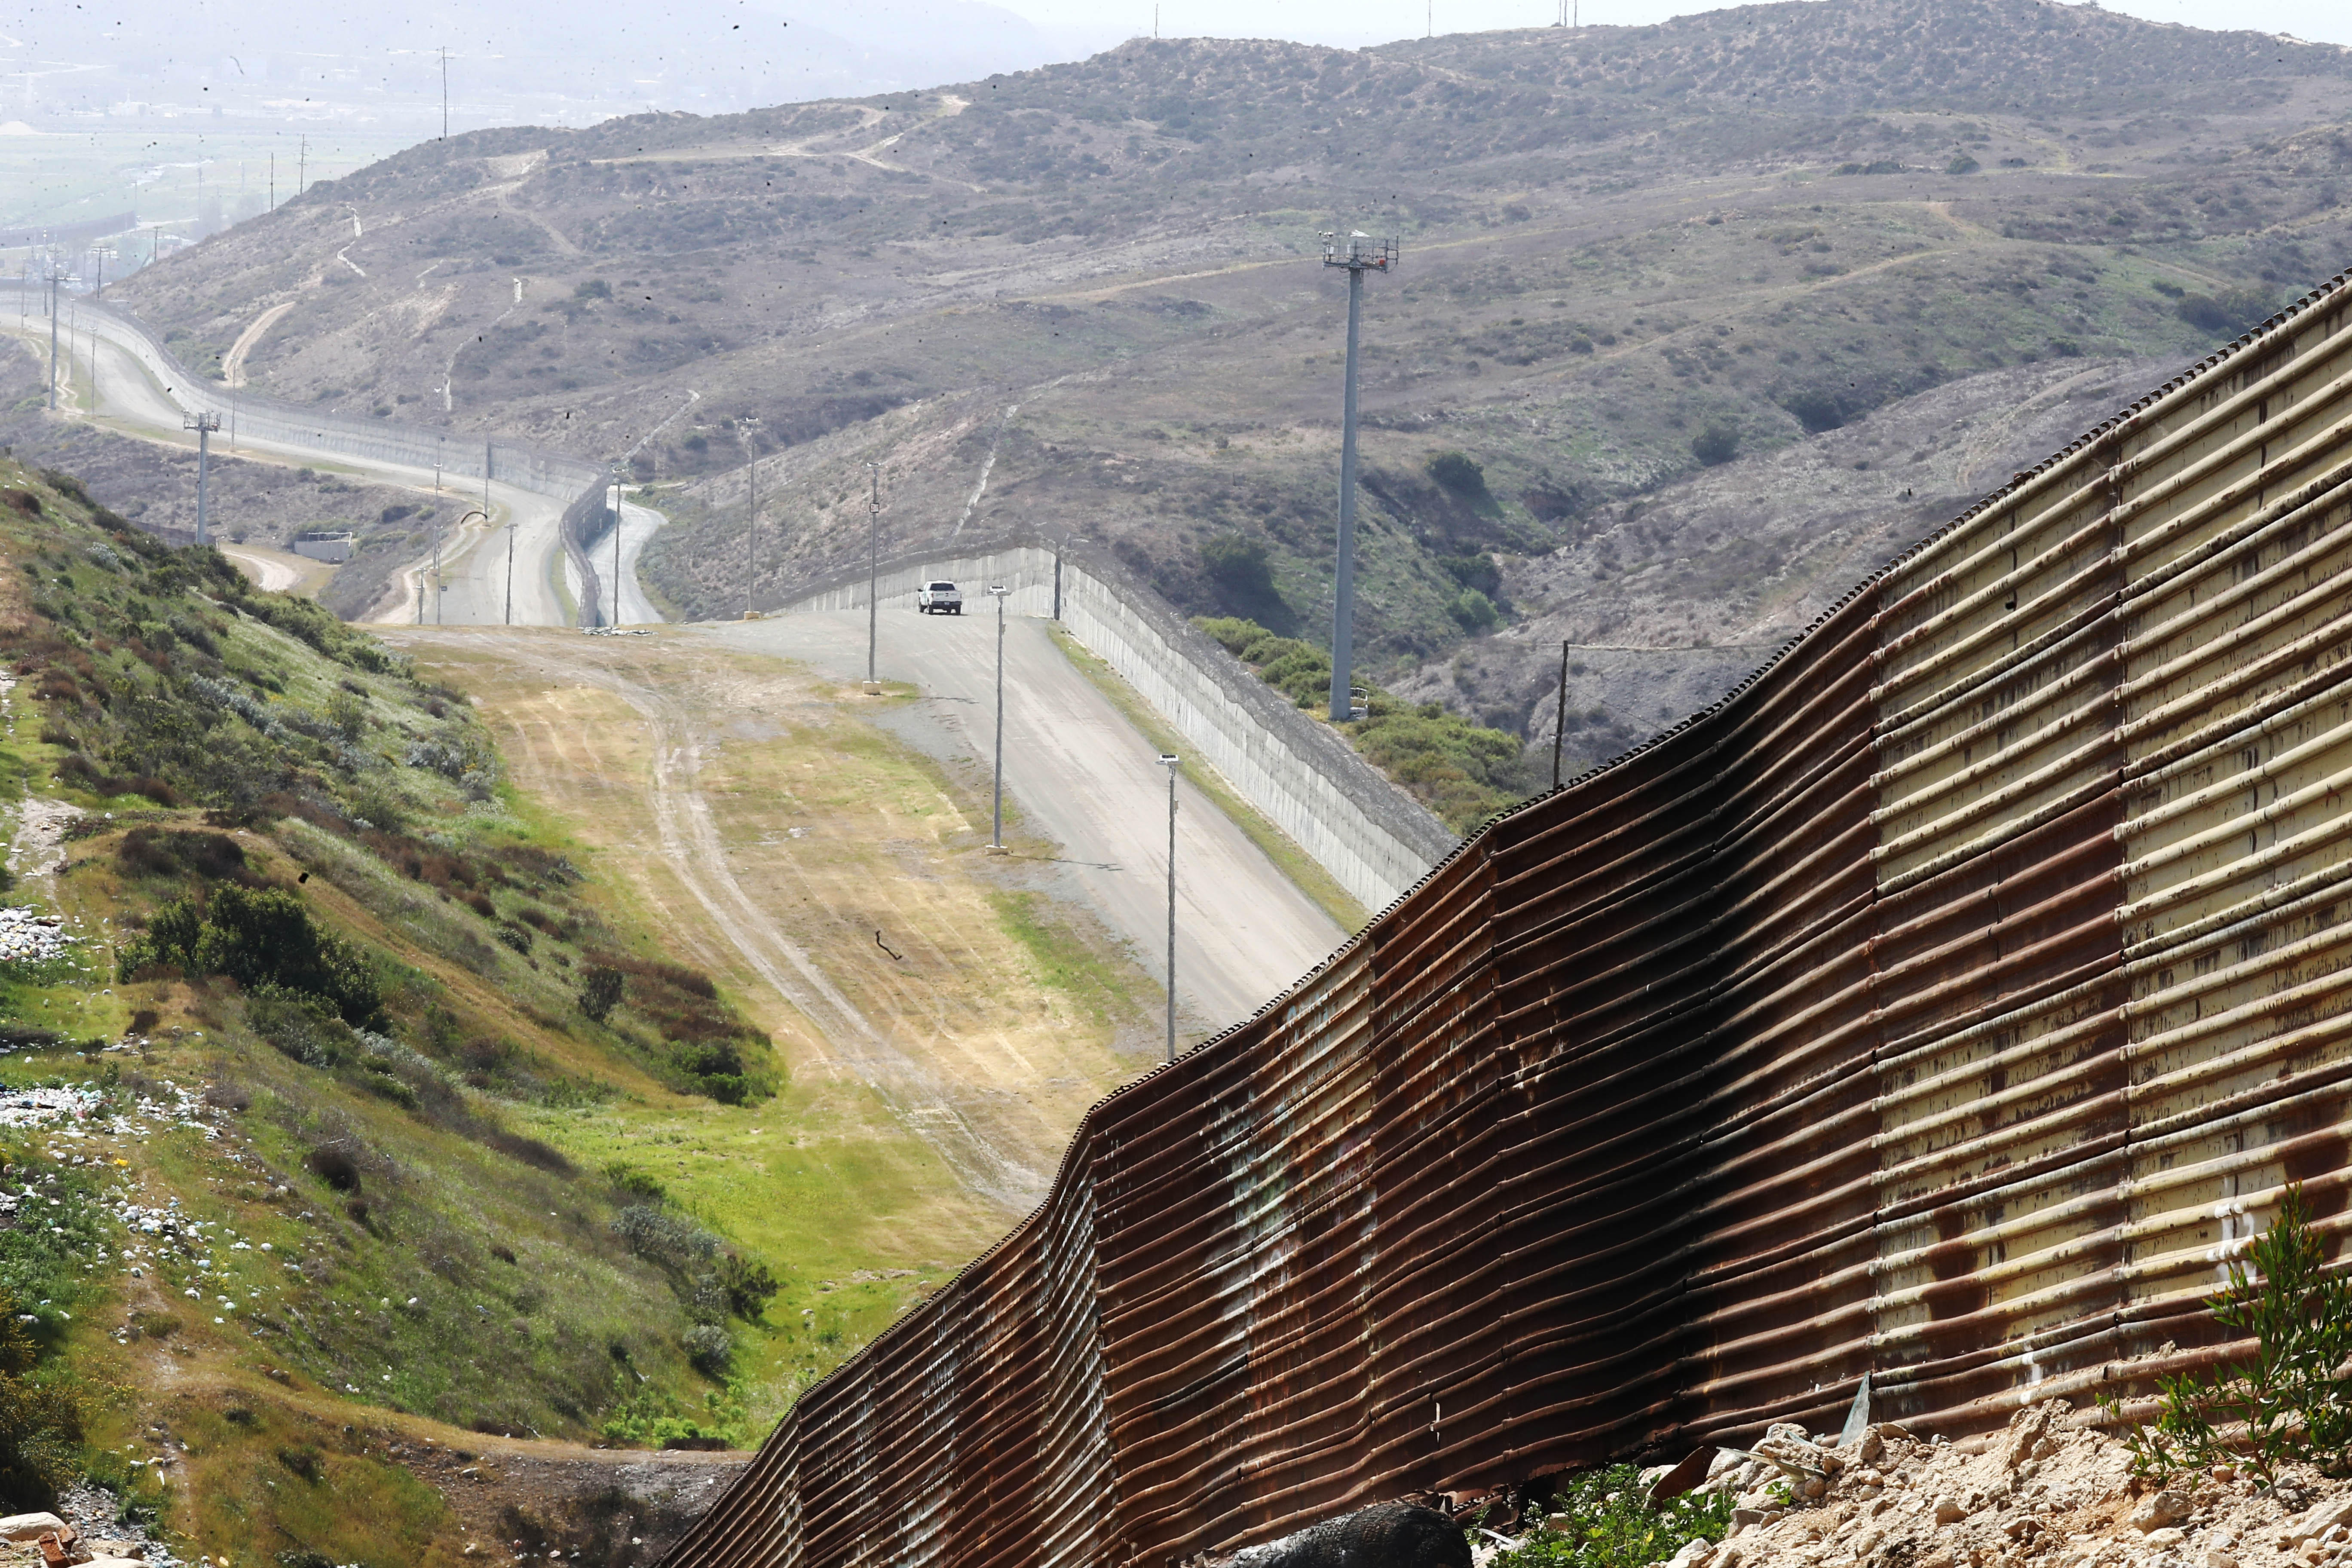 Report Finds Neglect And Abuse At >> Aclu Report Records Claim Border Agents Neglected Abused Migrant